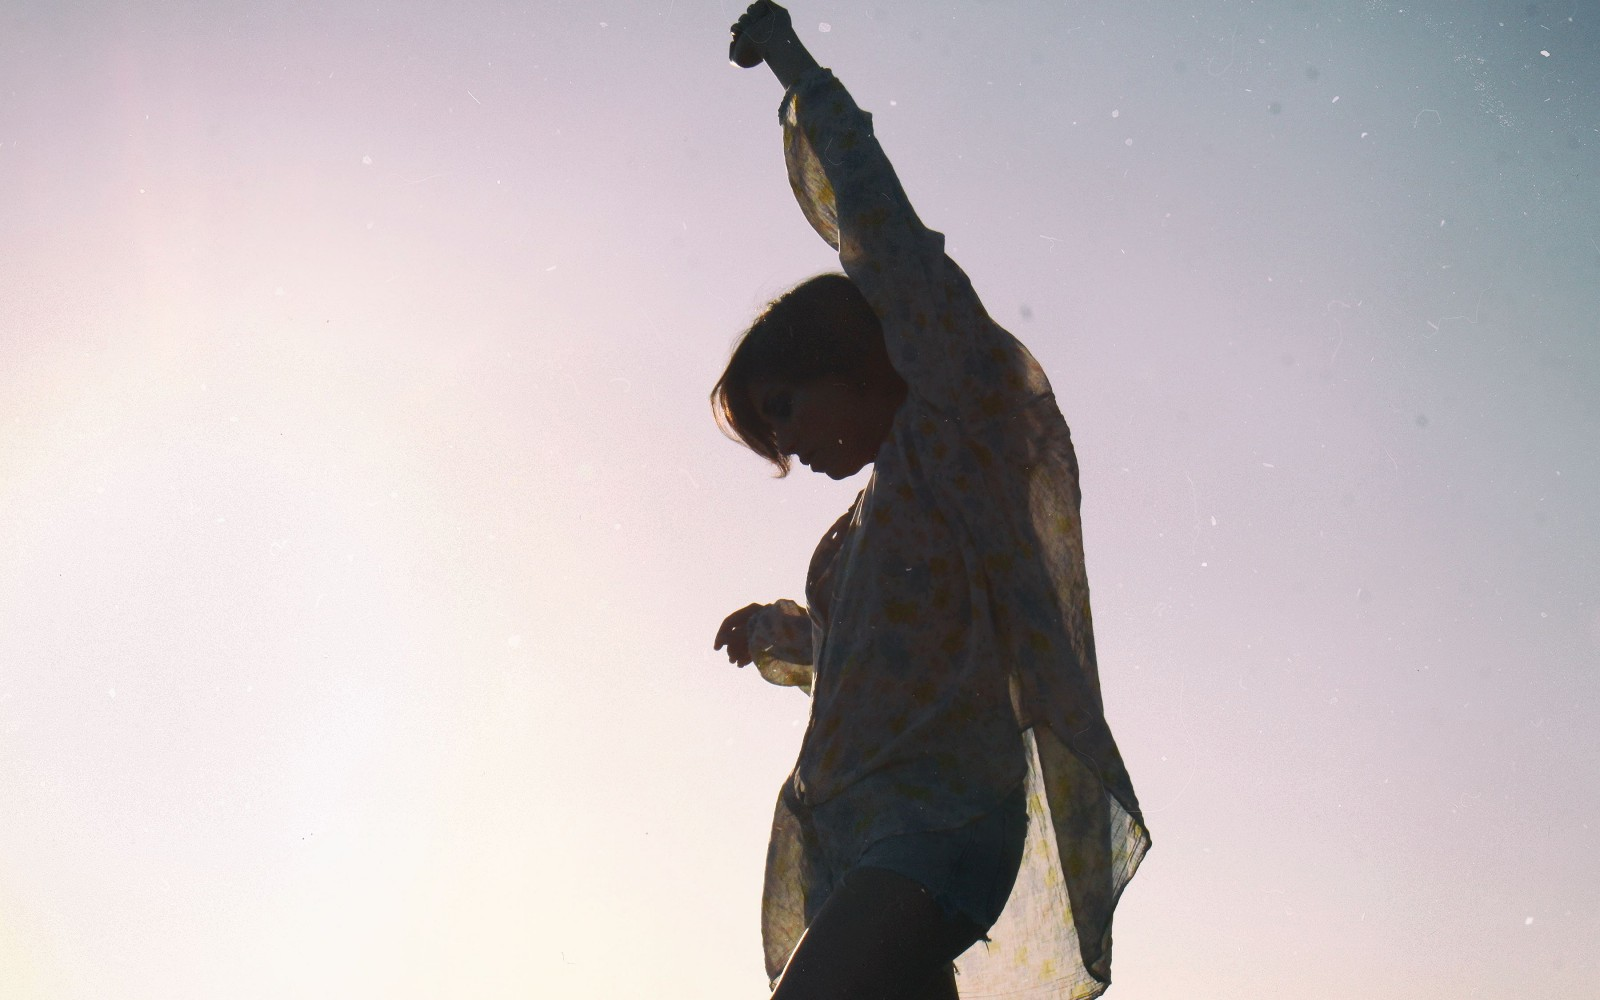 17 Reminders To Cast Your Worries Aside And Live In The Moment